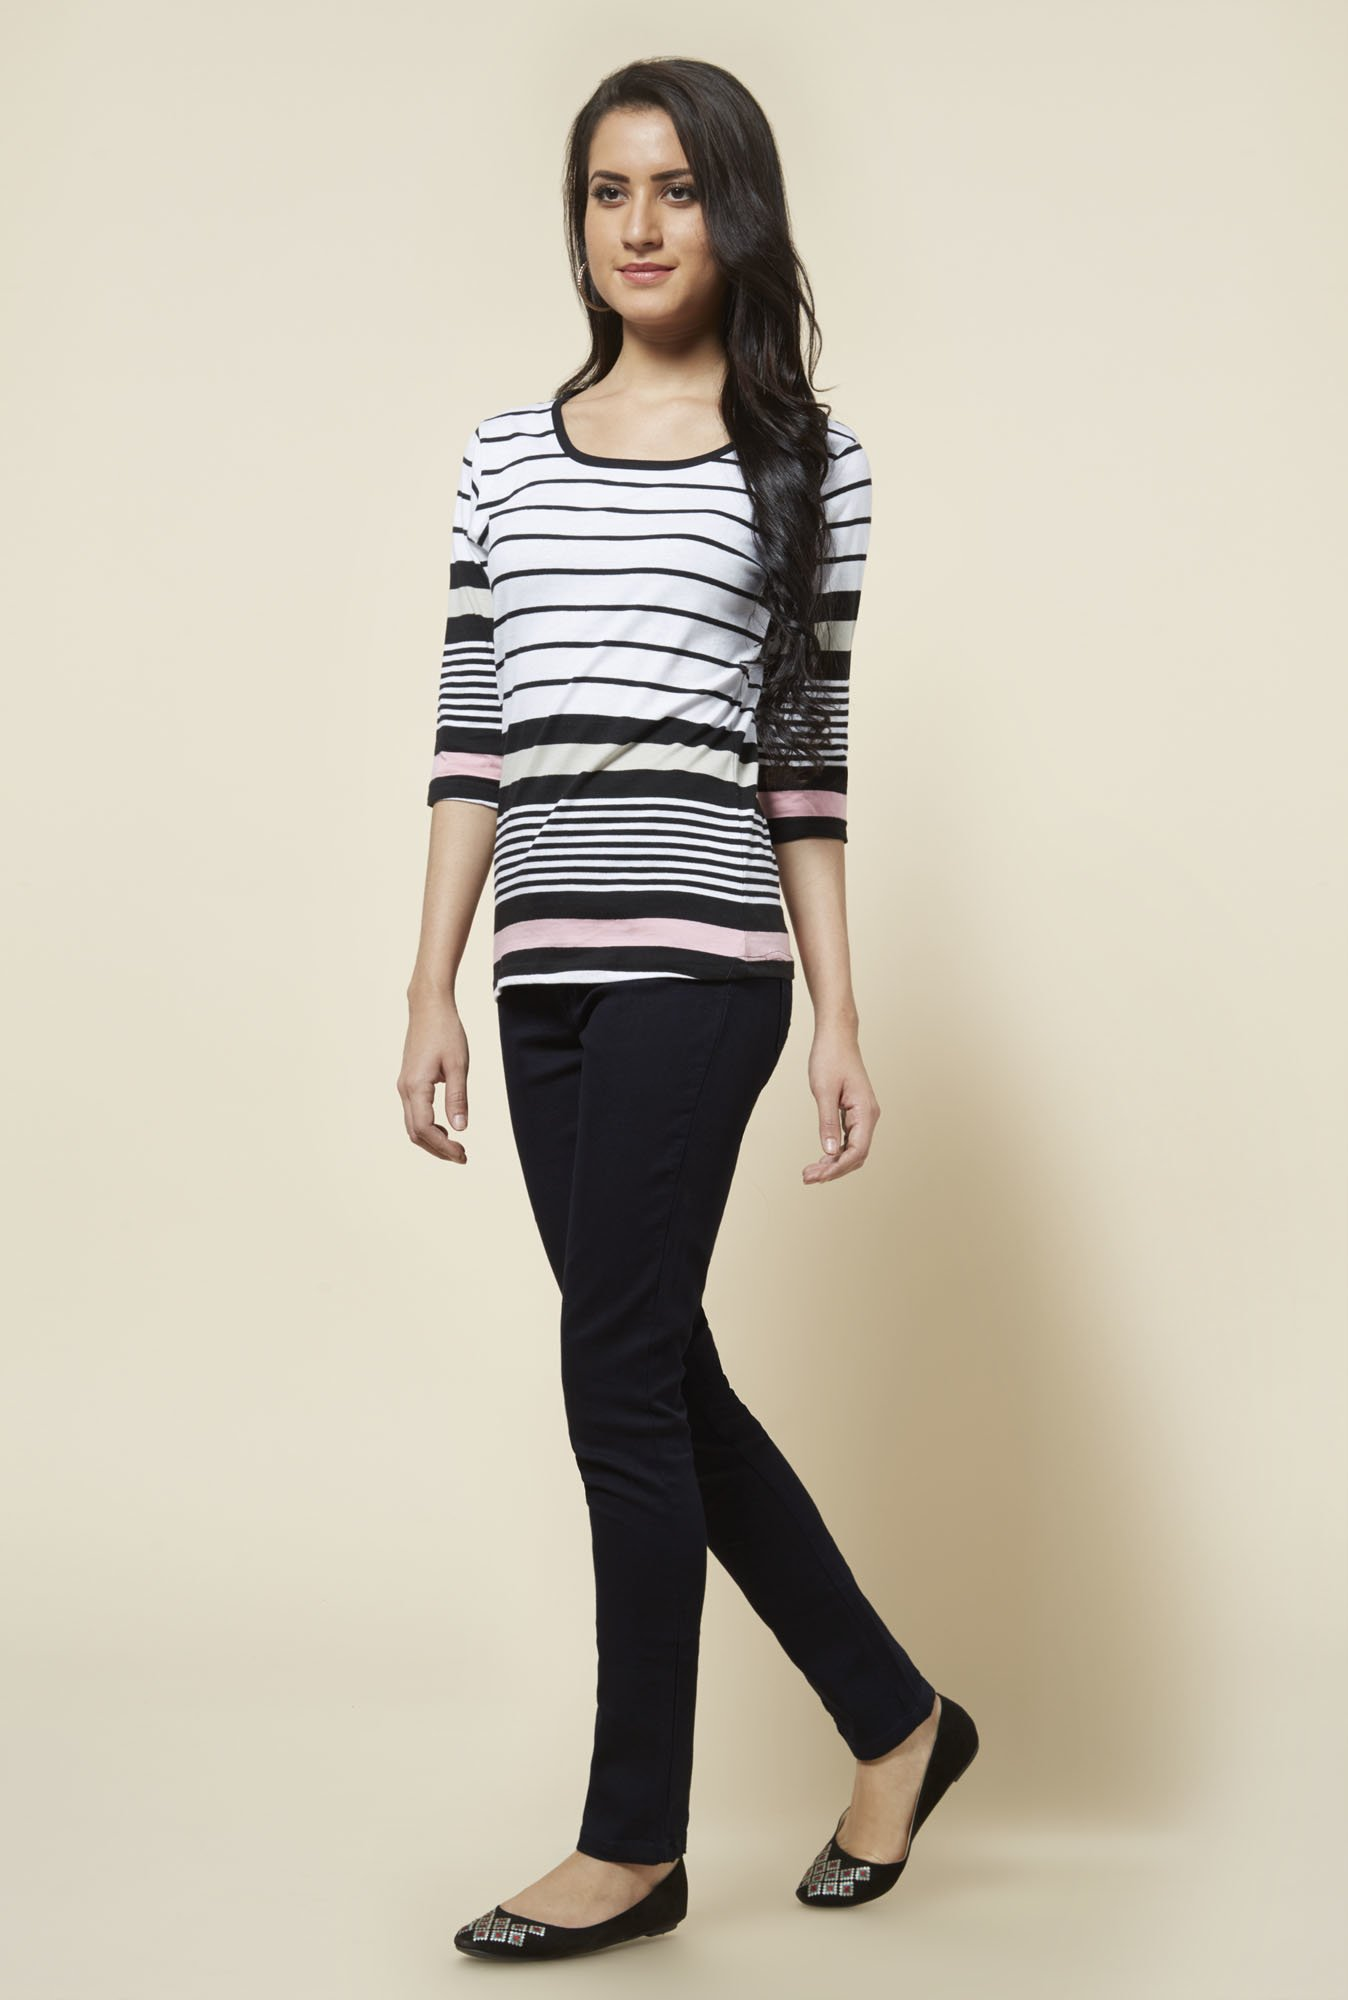 Zudio White Zoe Striped Top